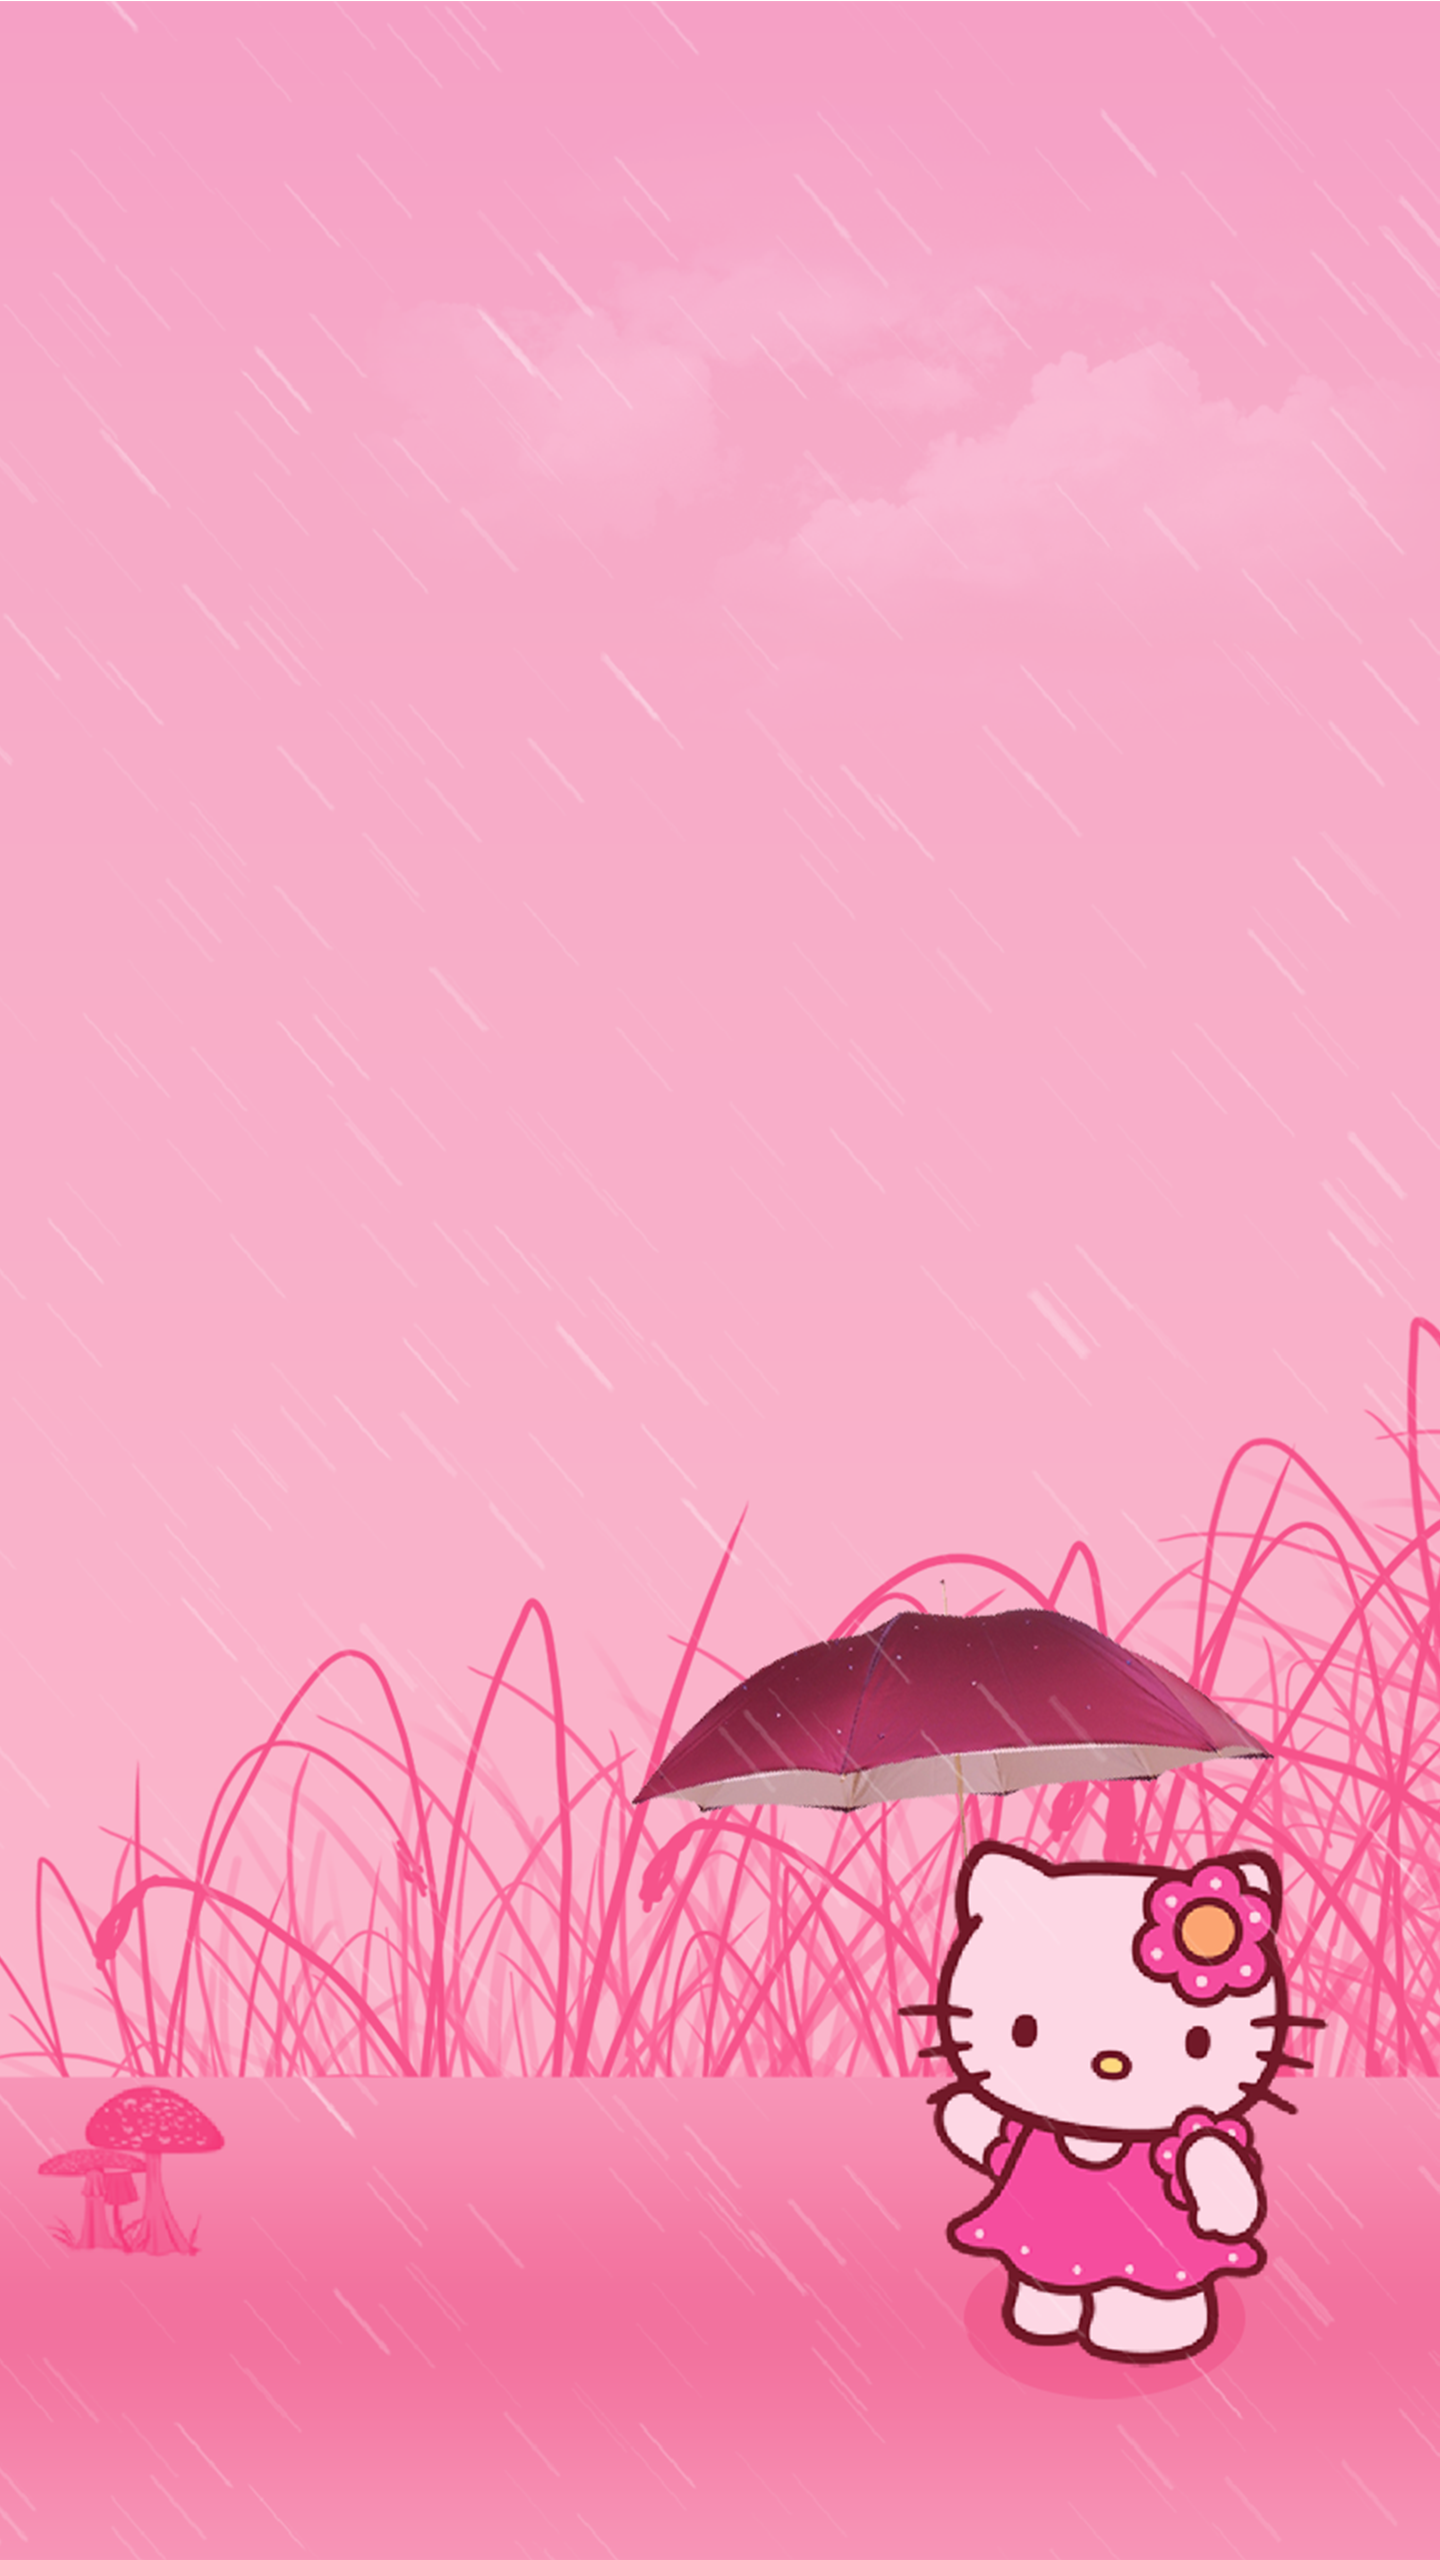 Fantastic Wallpaper Hello Kitty Hot Pink - dd37982e8bdcda1f024c37bef07243b4  Pictures_12723.png